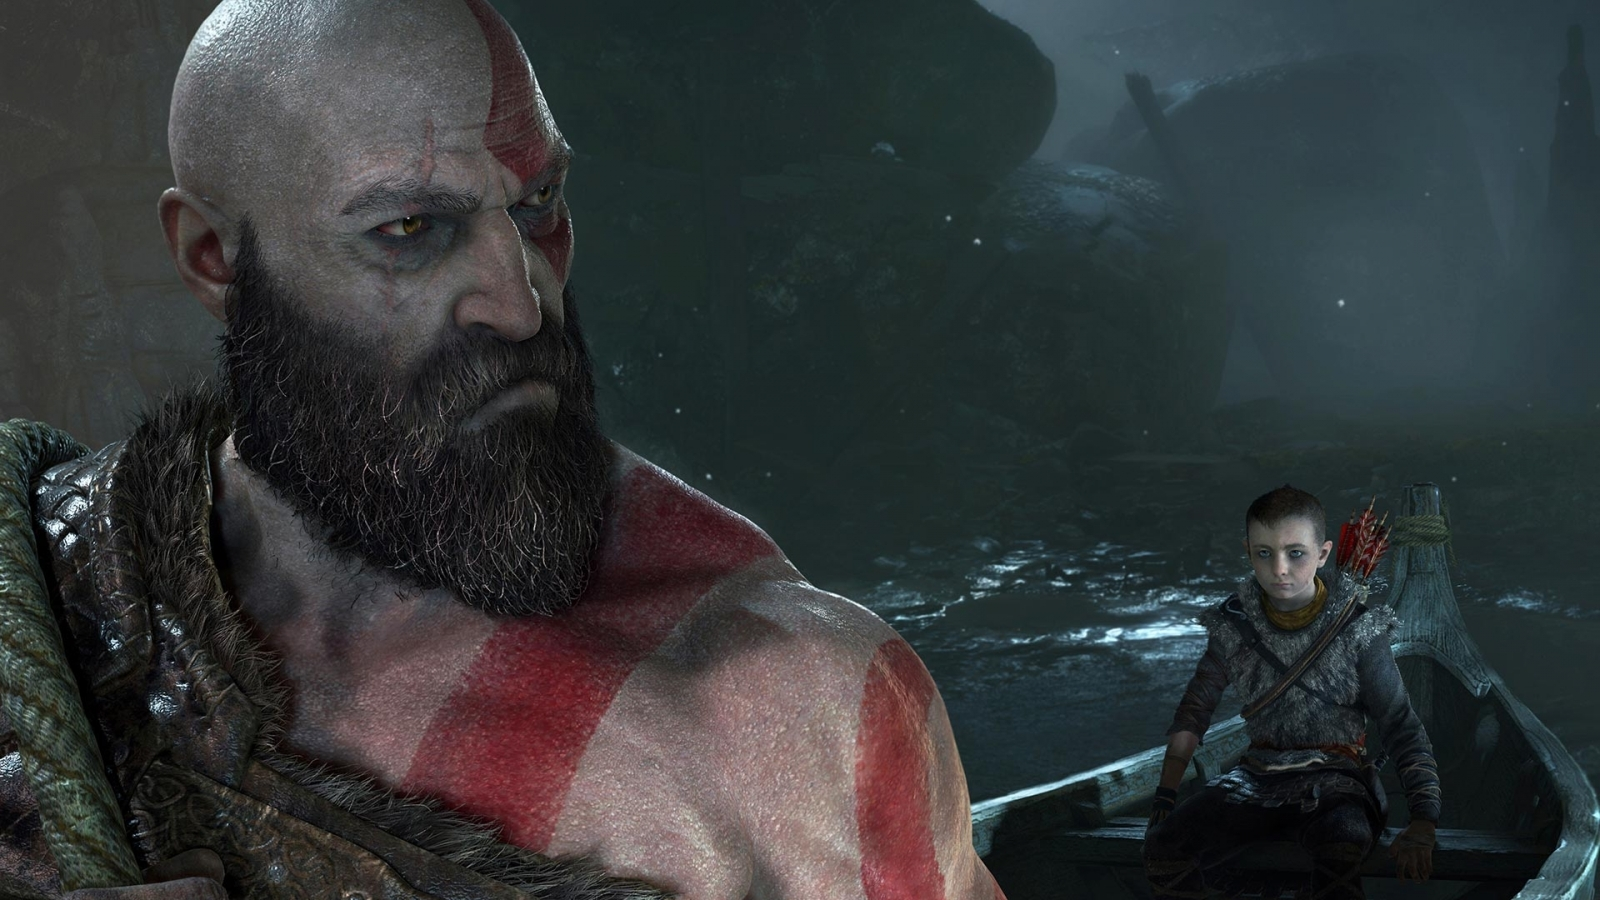 God of War's store listing hints at March 22 release